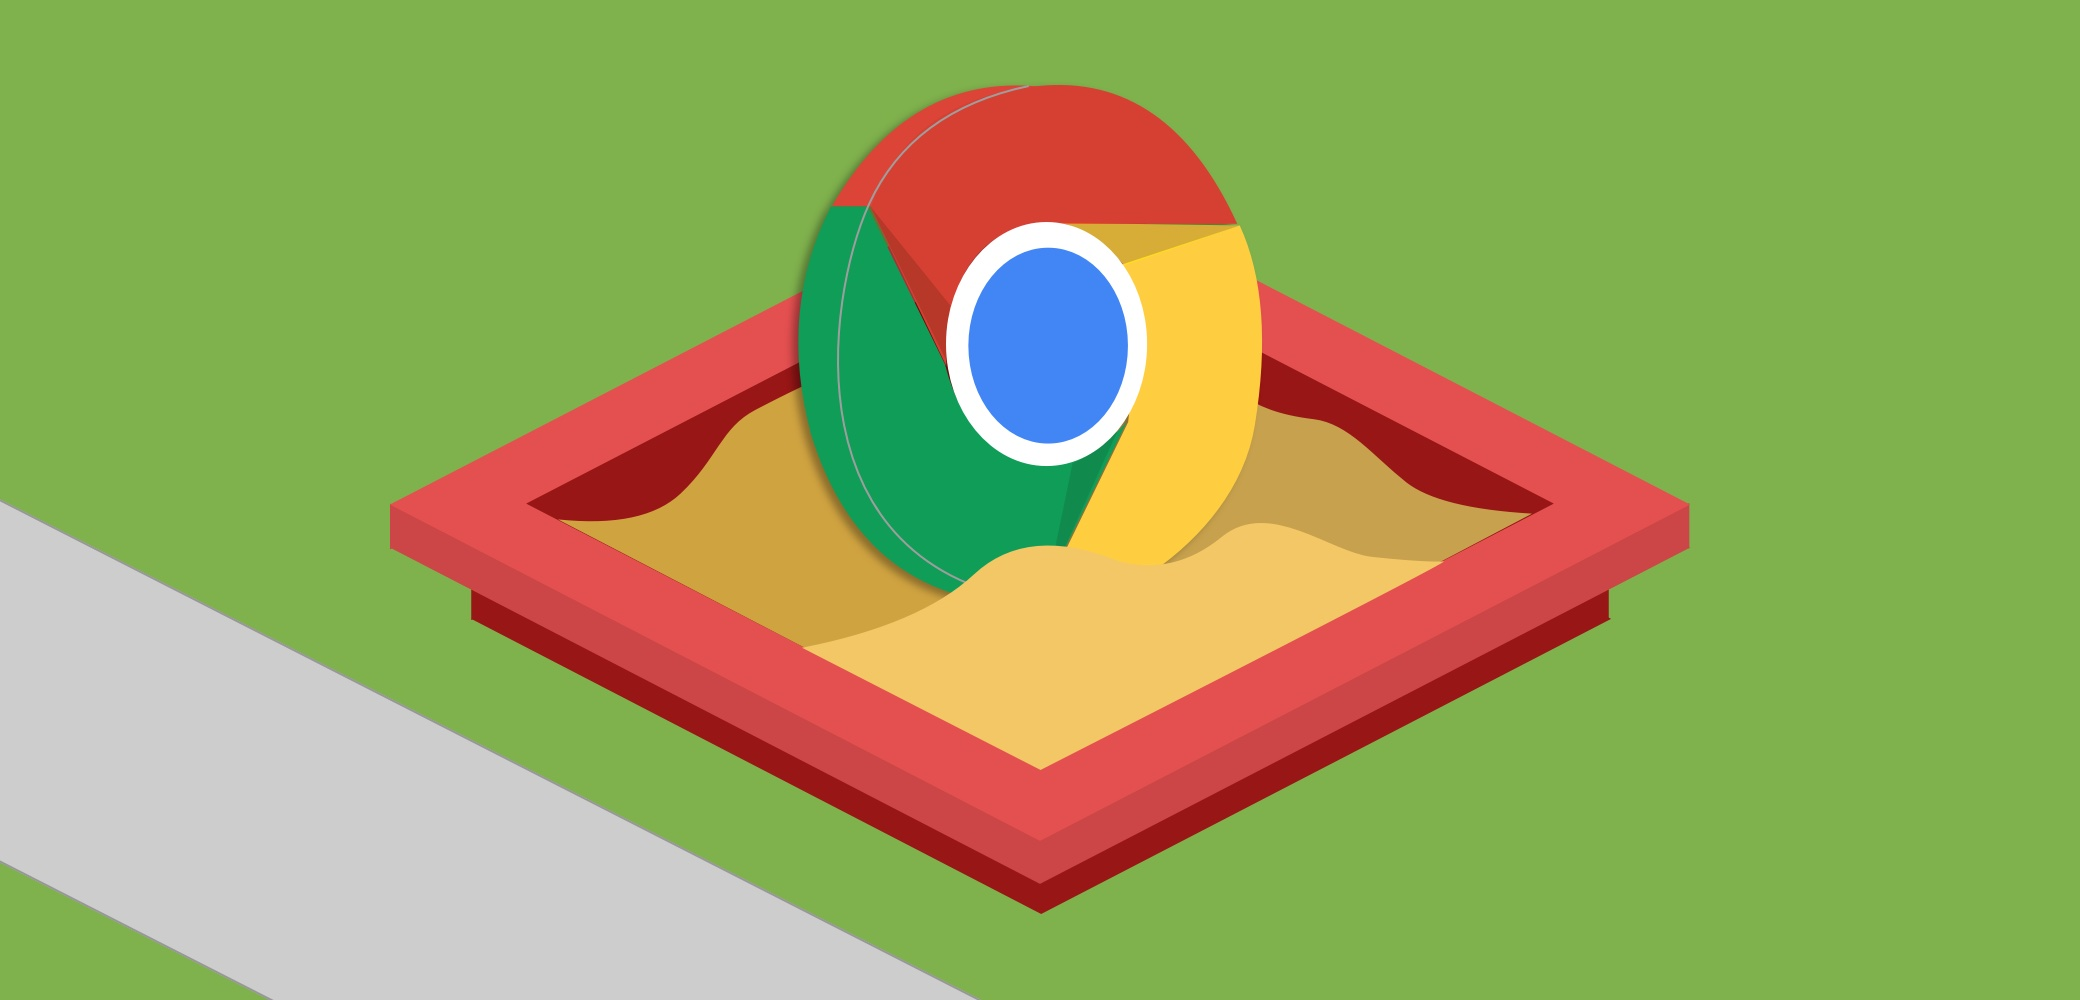 Google Floc Chrome Sandbox